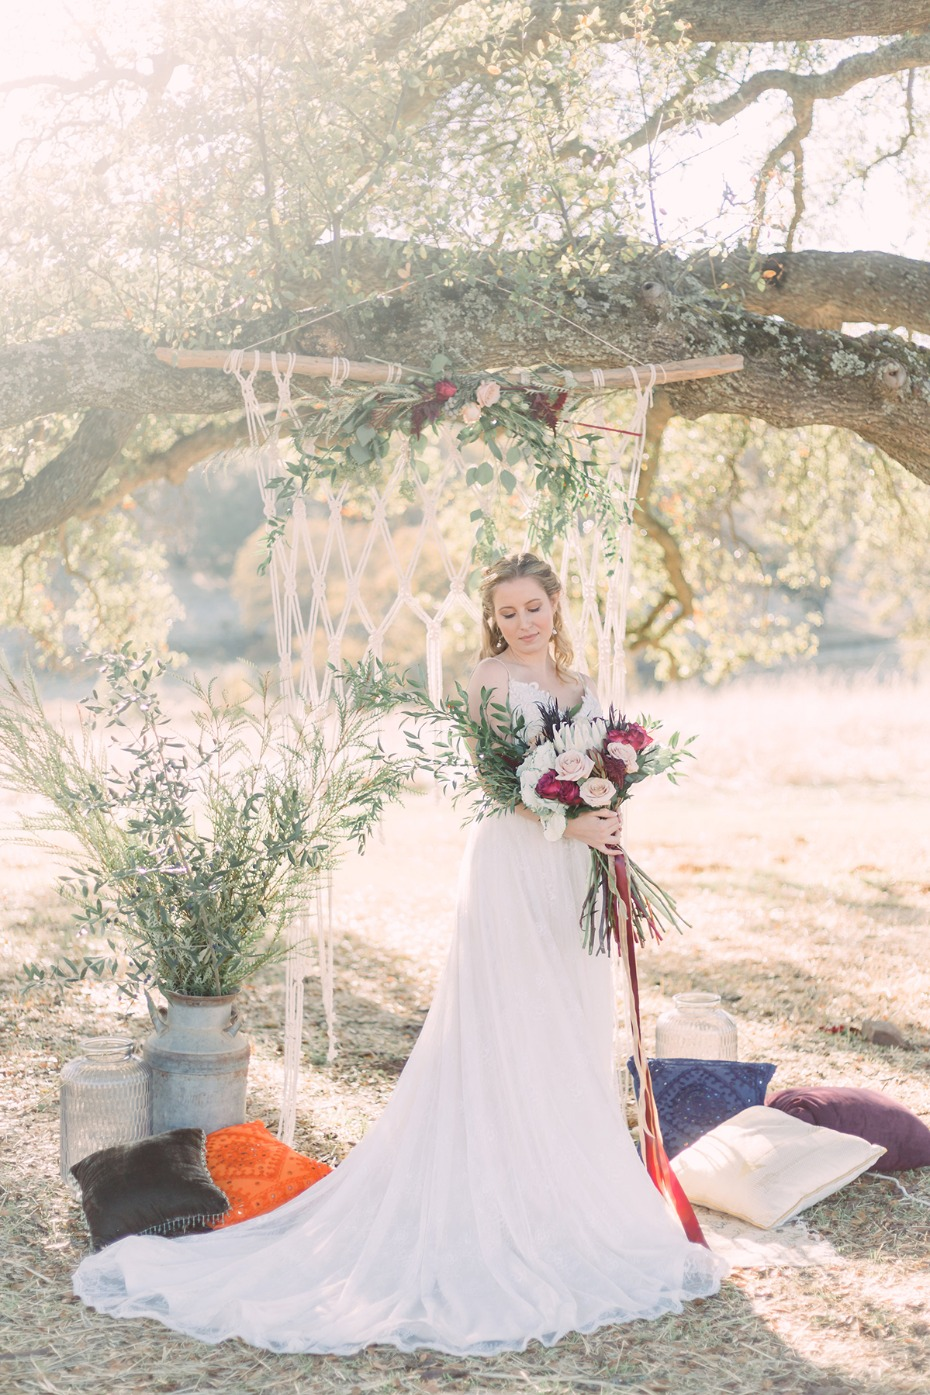 Have a bohemian styled ceremony